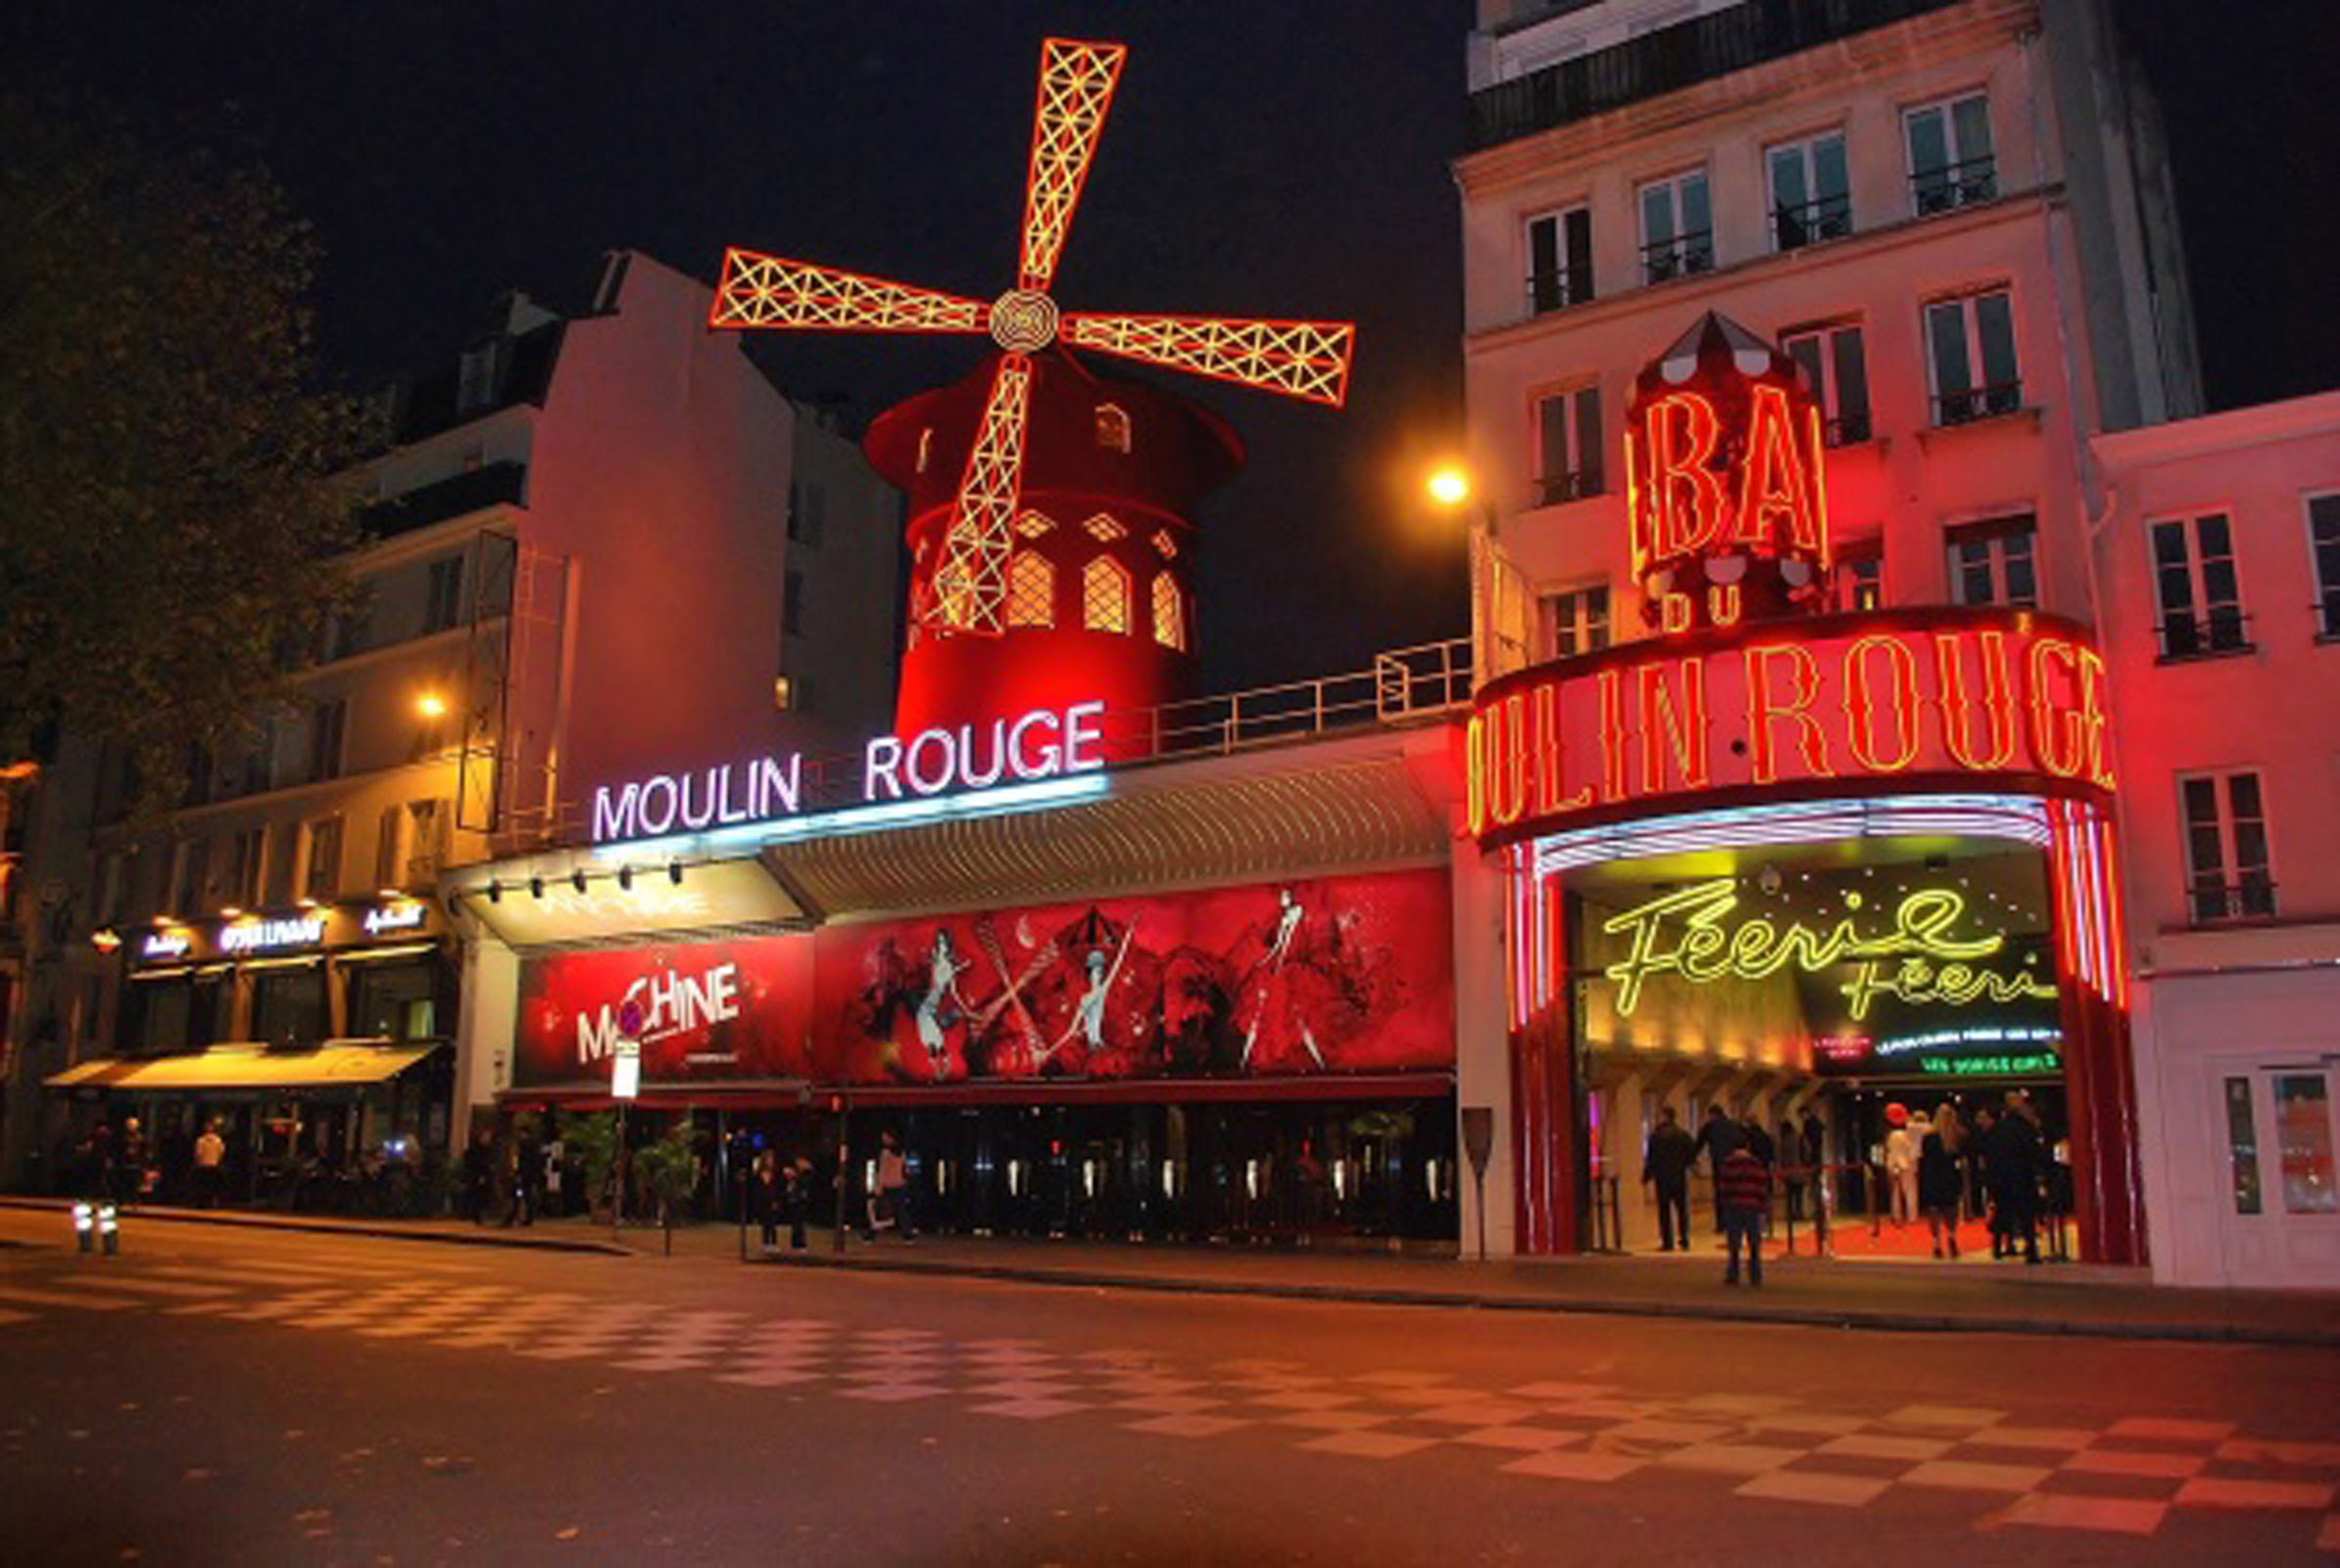 399/Photos/Libres/moulin-rouge.jpg